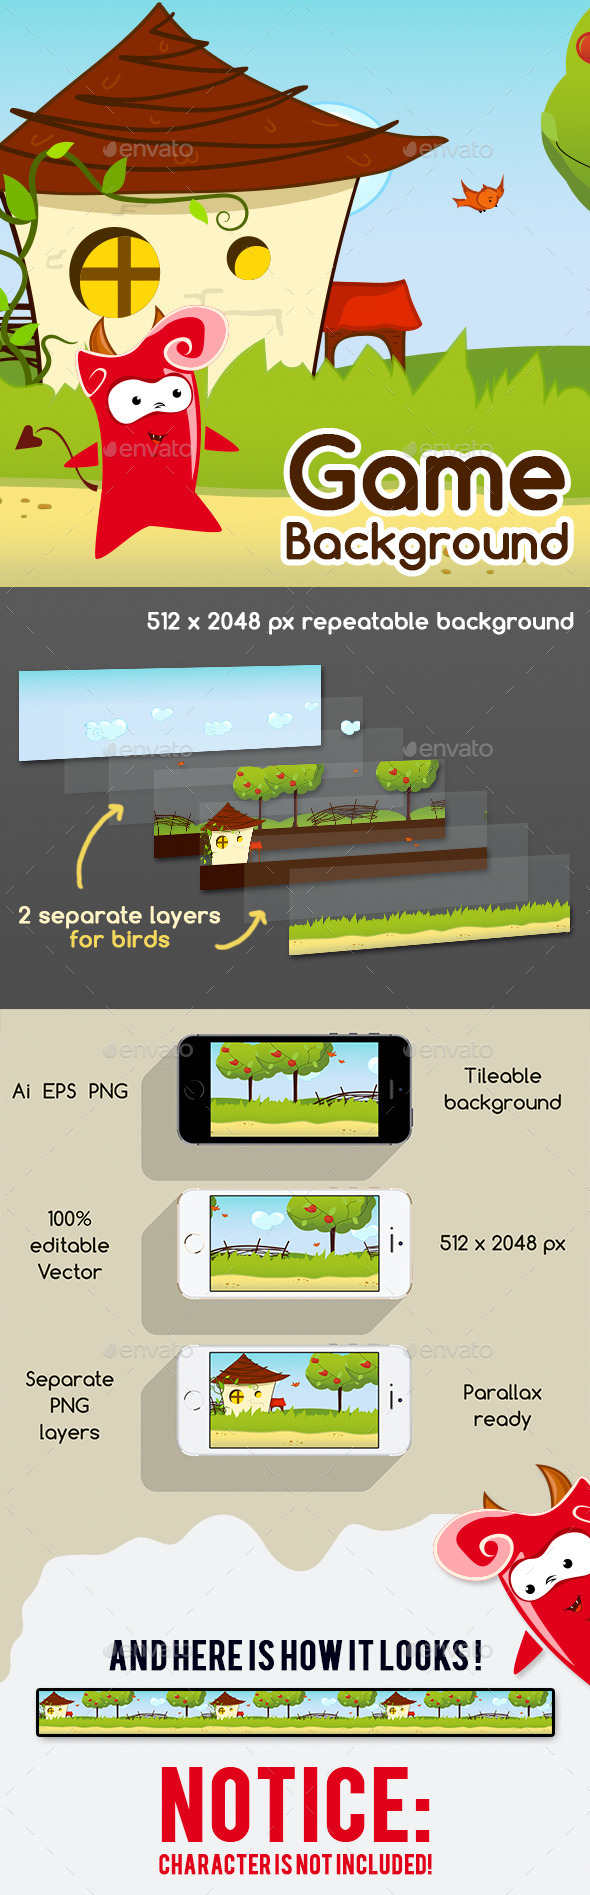 GraphicRiver Game Background with Parallax Effect 11865576